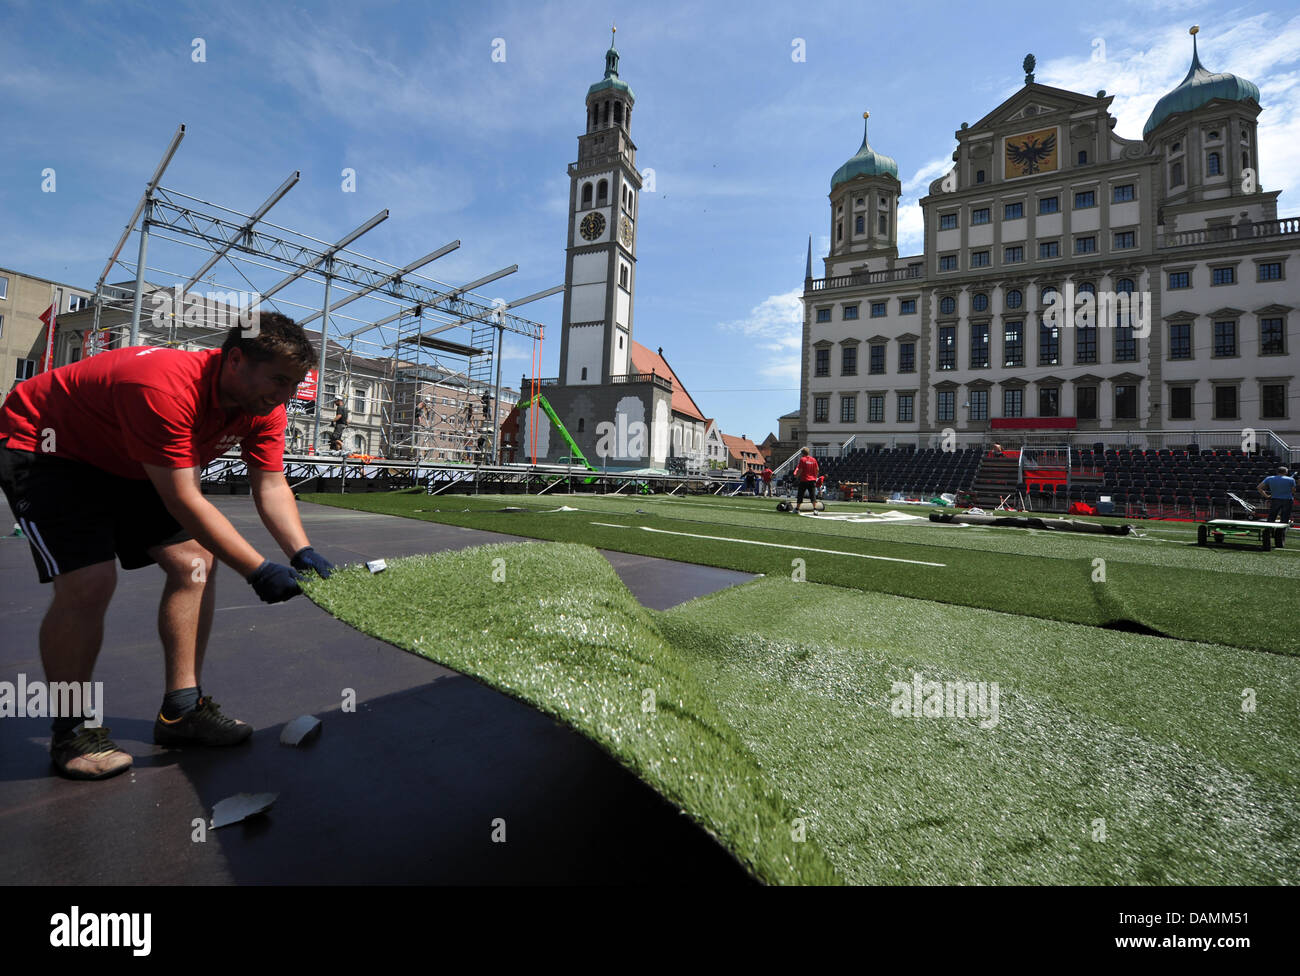 Workers lay out artificial grass in front of the city hall at the